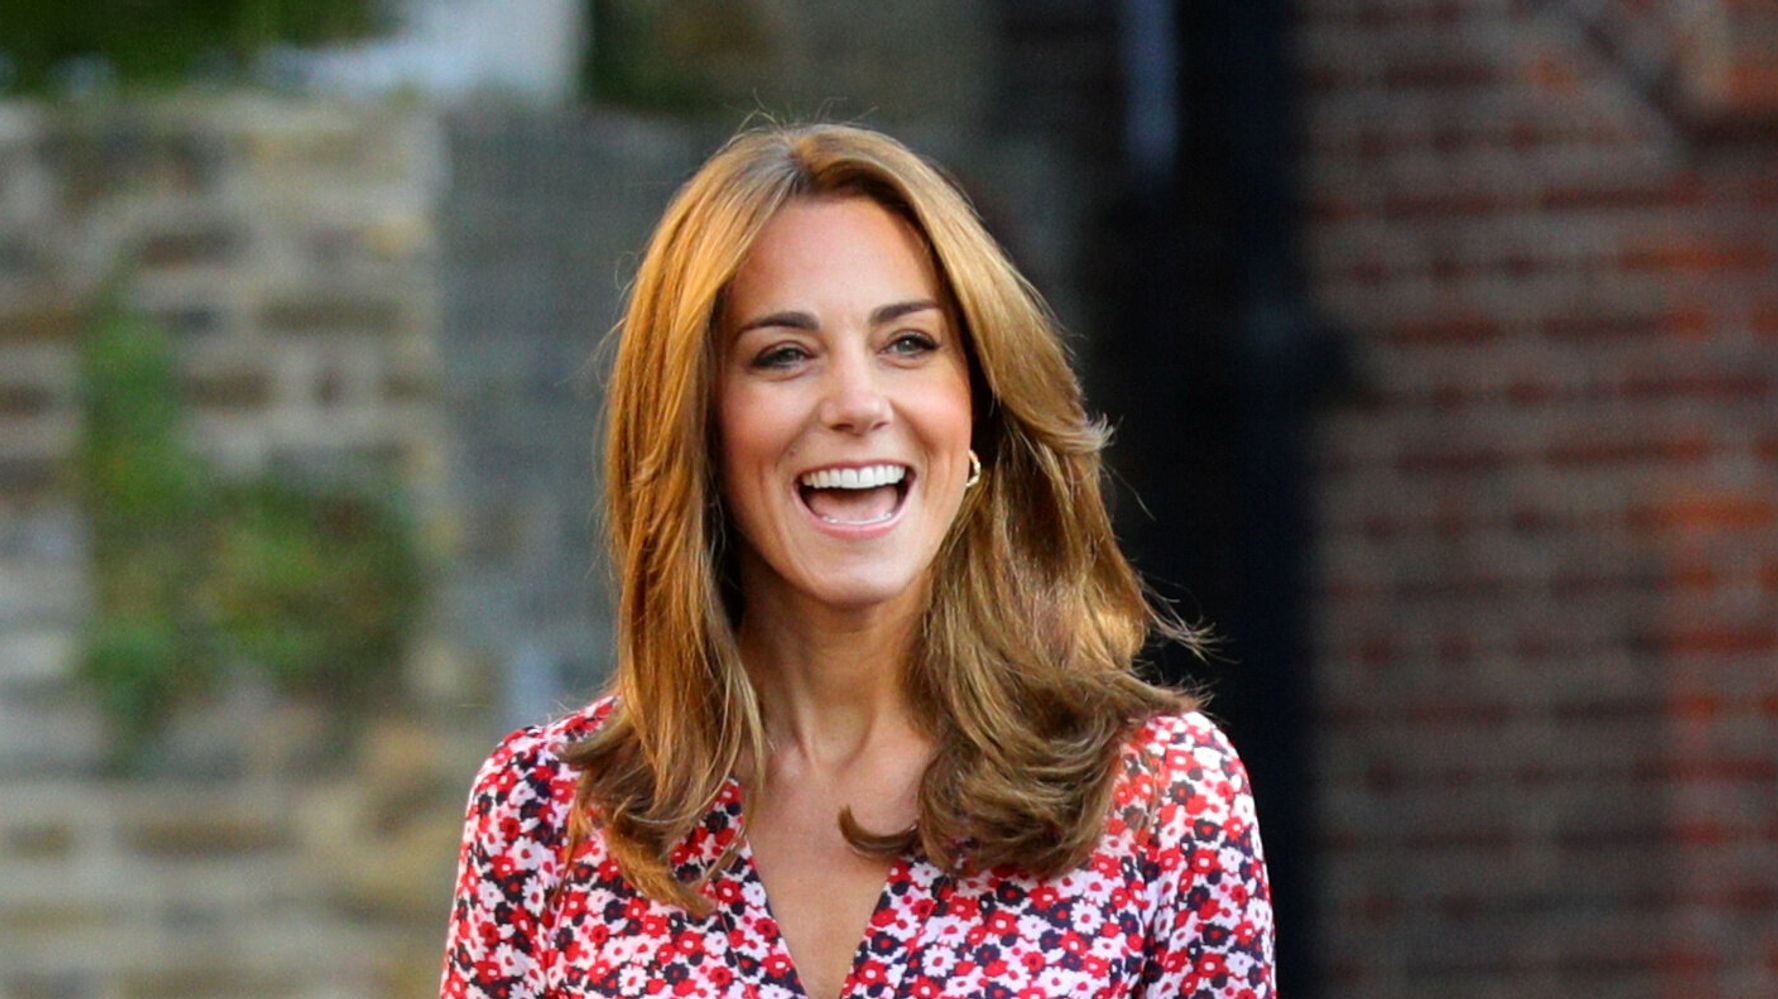 Kate Middleton's Michael Kors Dress Has Sold Out – But It Comes In Other Prints